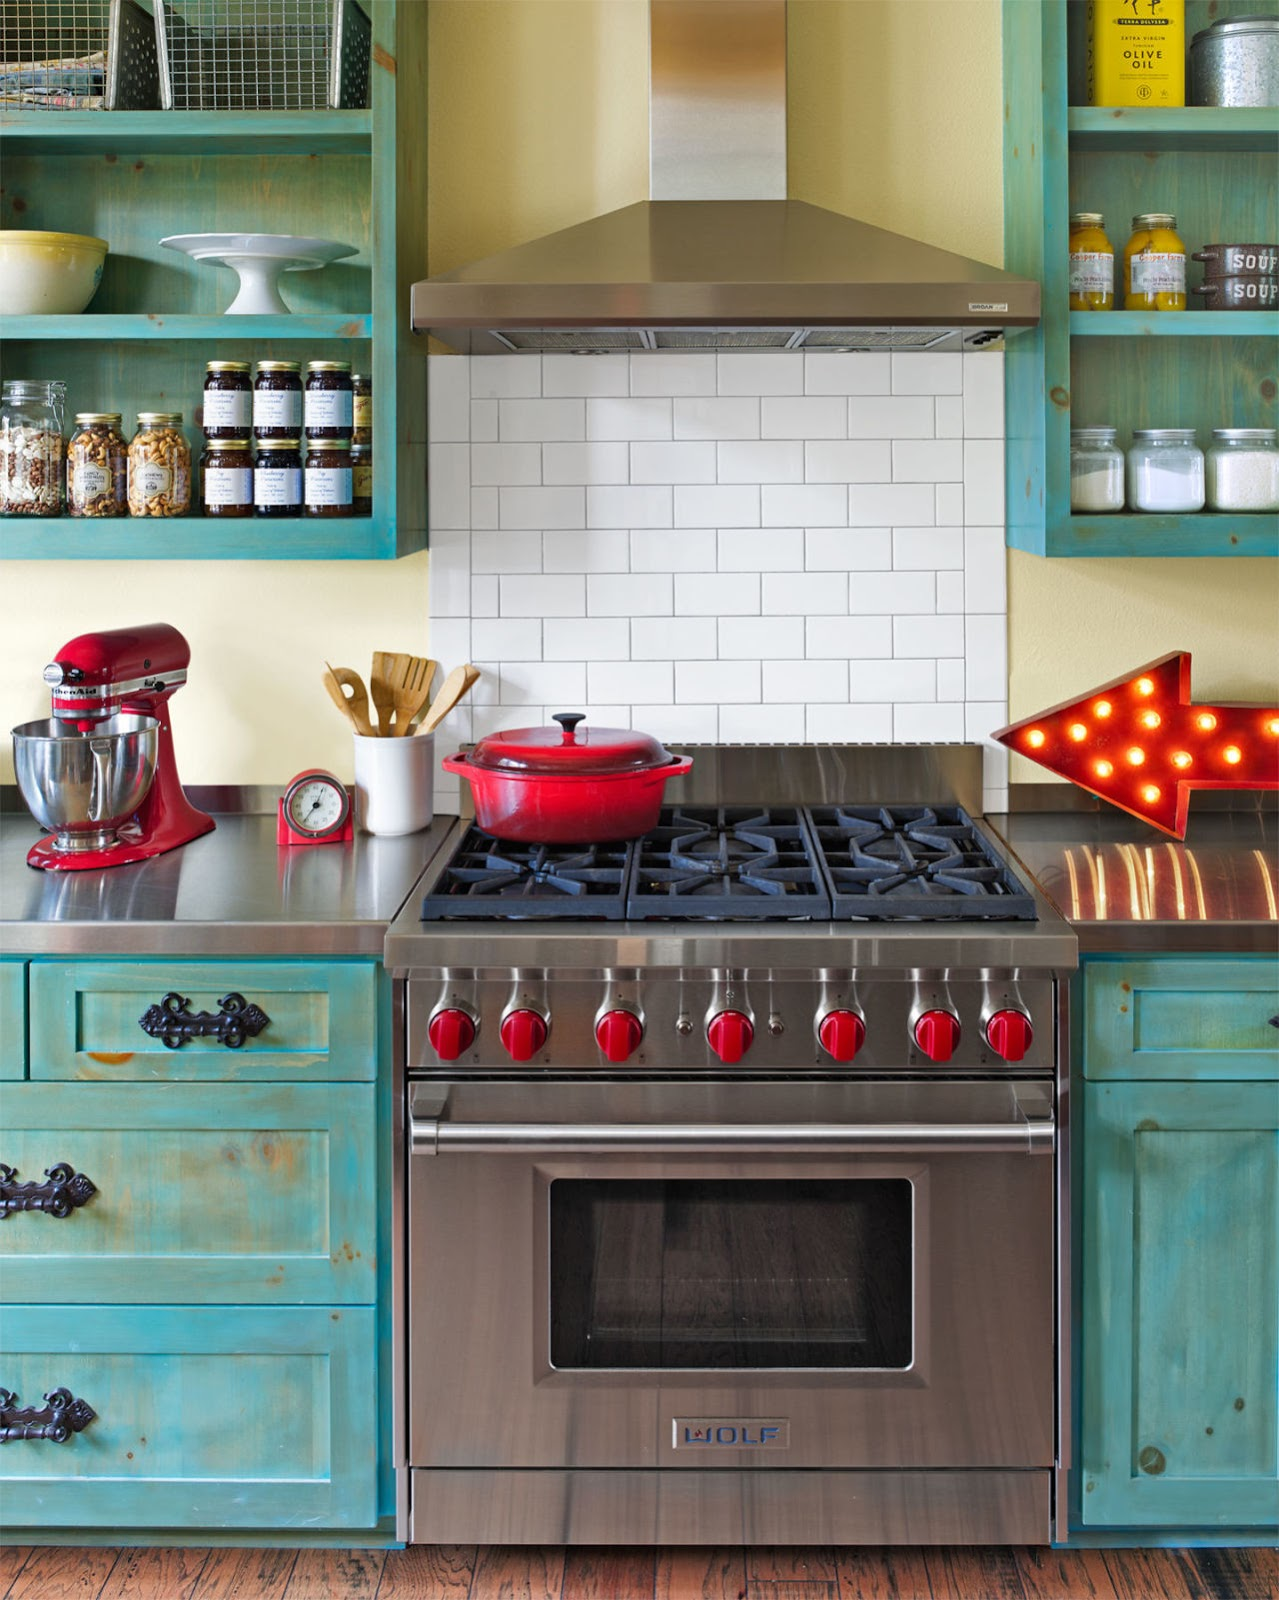 Decor Inspiration /// Colorful Kitchens That Work | Design ...